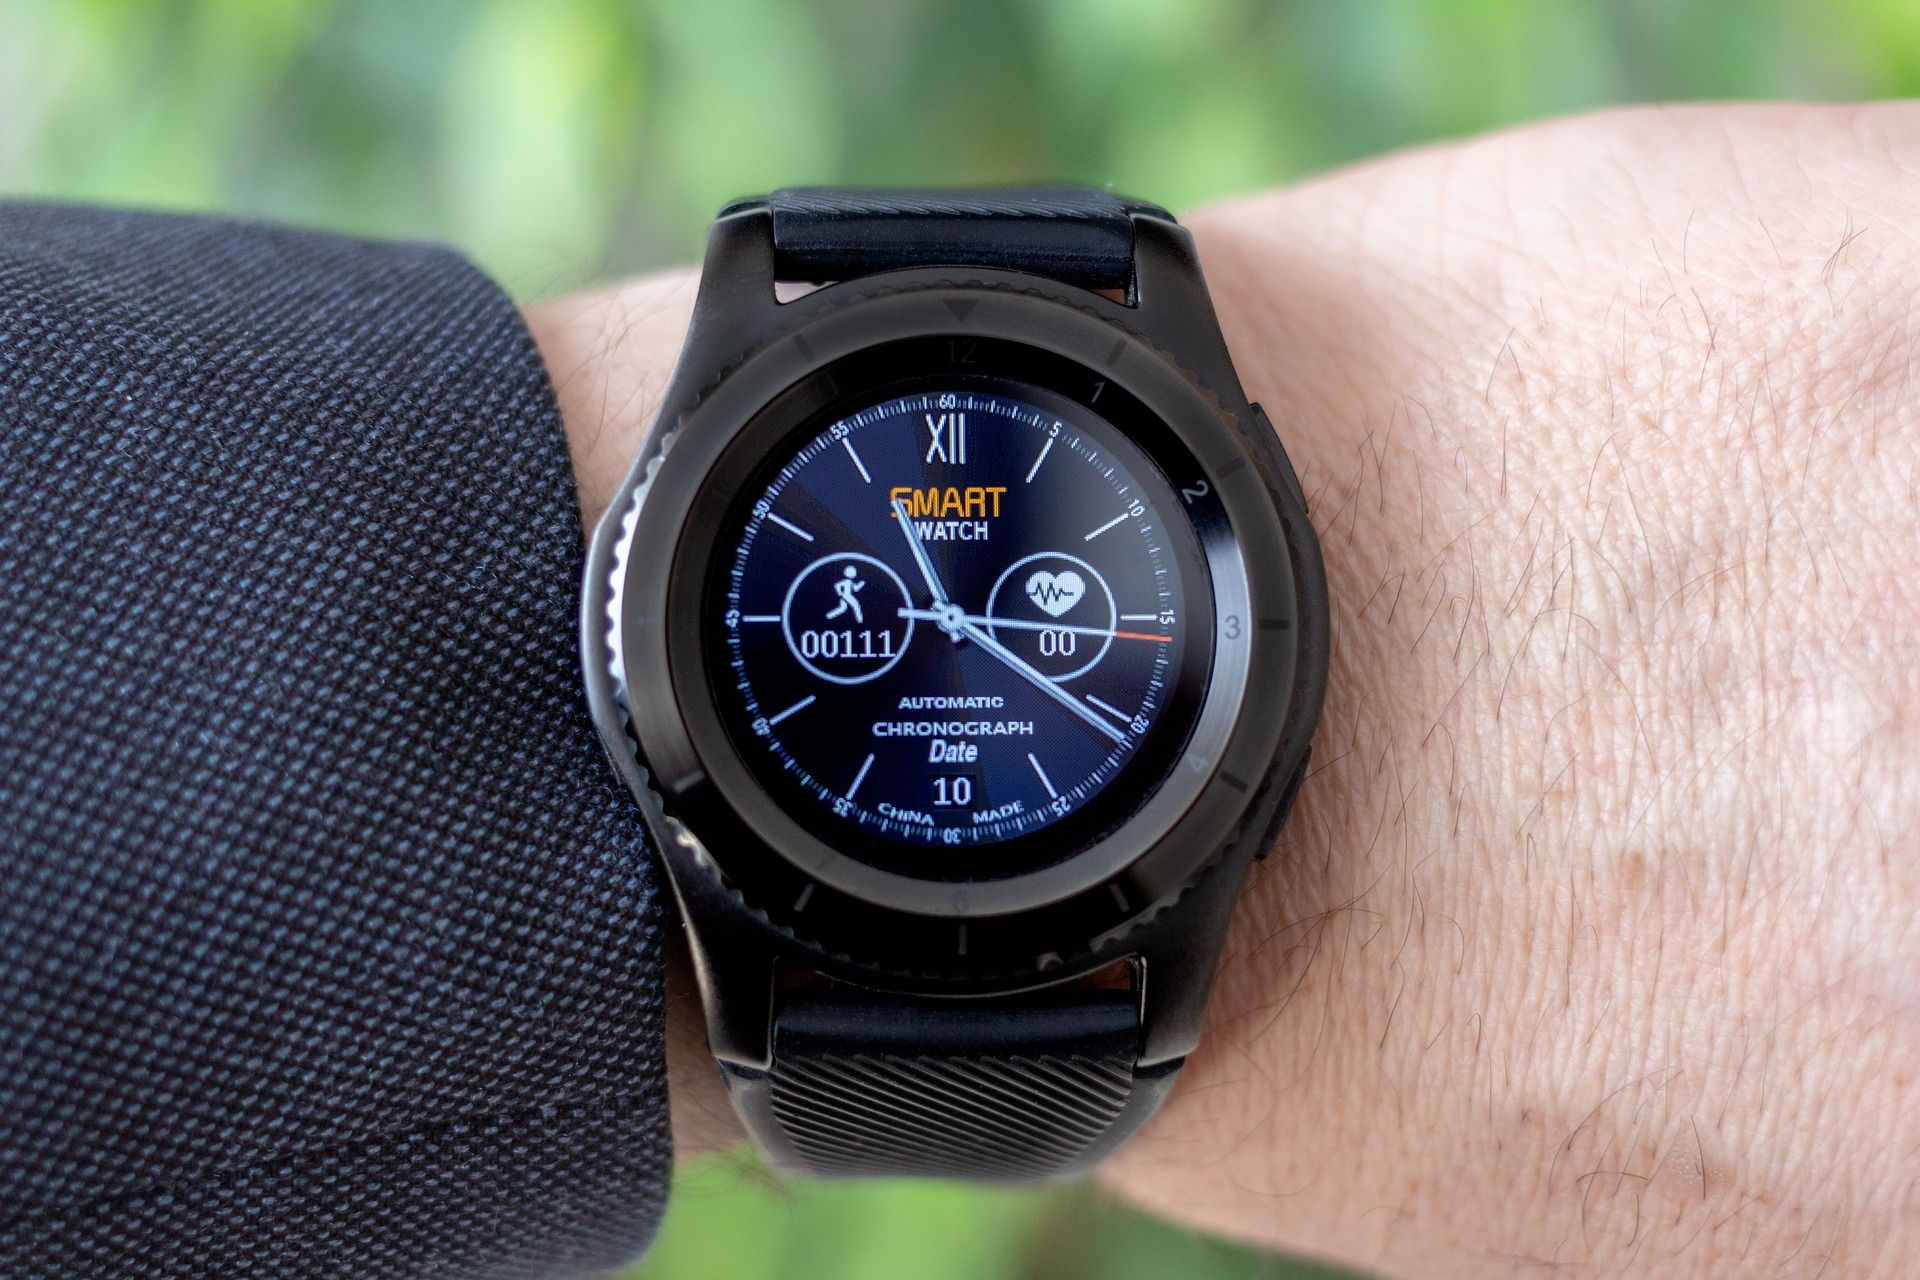 666da167740 ... so what about the smartwatches that give you more access to your  contacts. Today In this list you will find Best Smartwatches under 200  dollars.